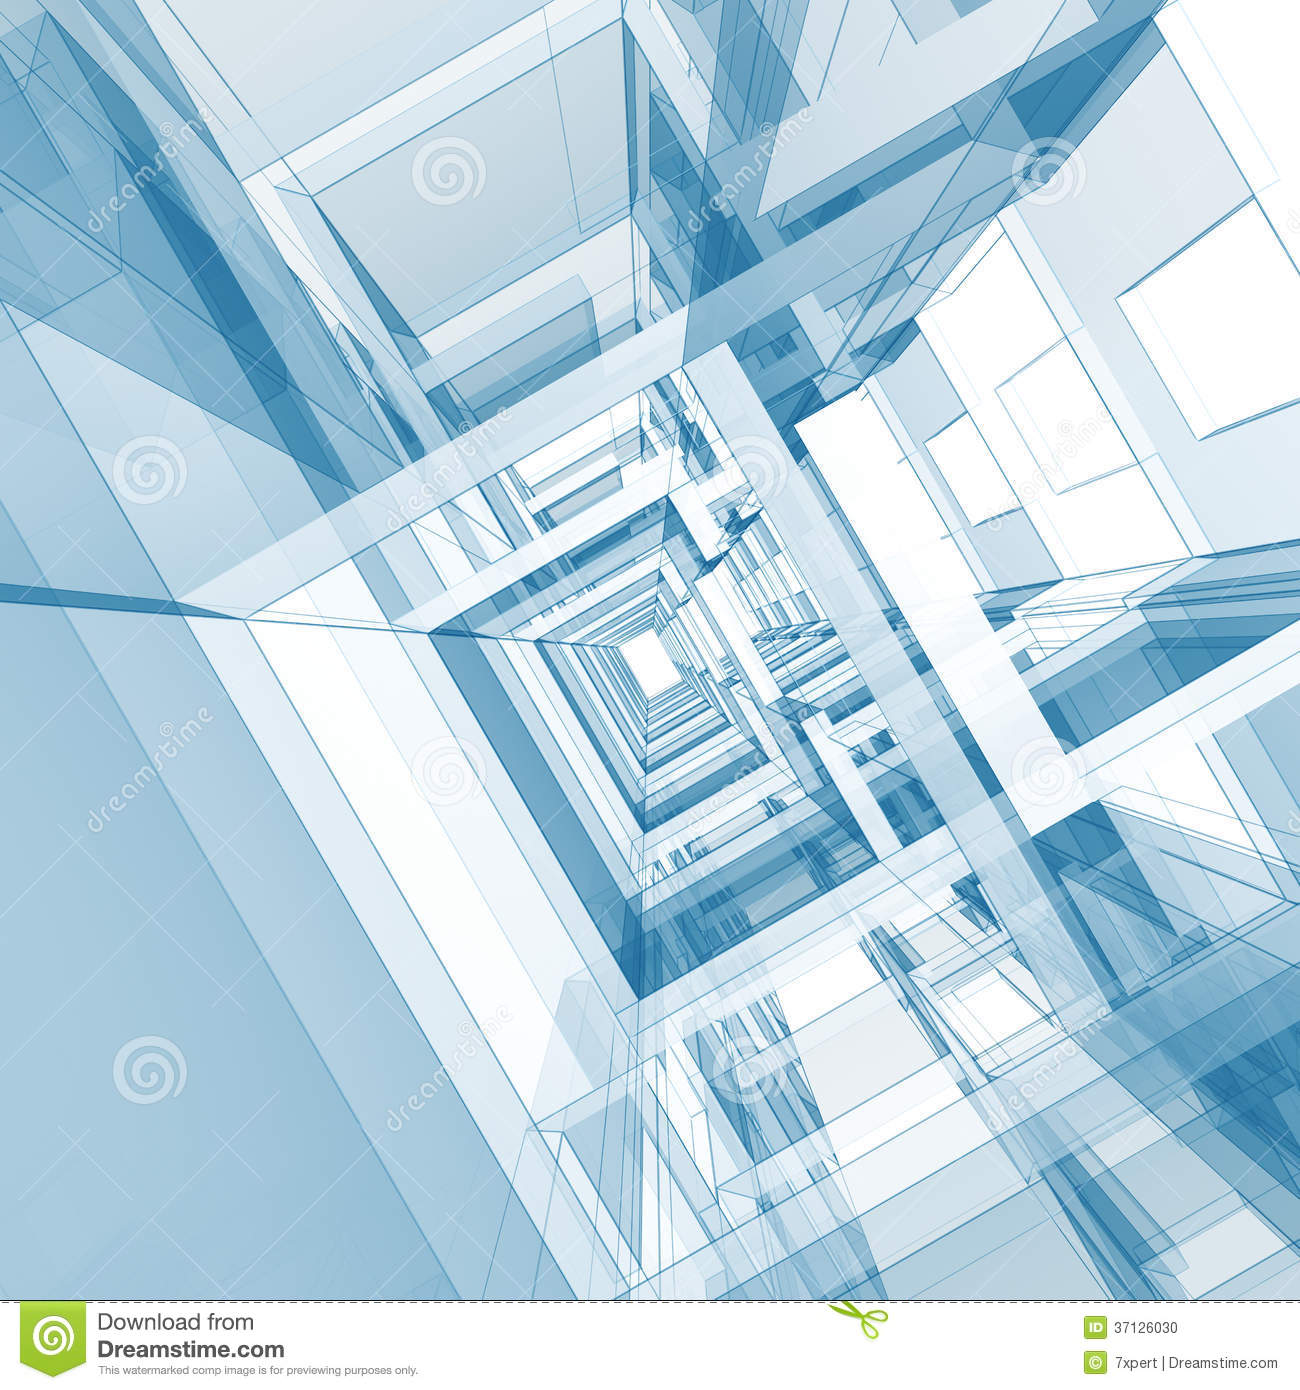 Abstract Architecture Background Stock Photo Image 37126030